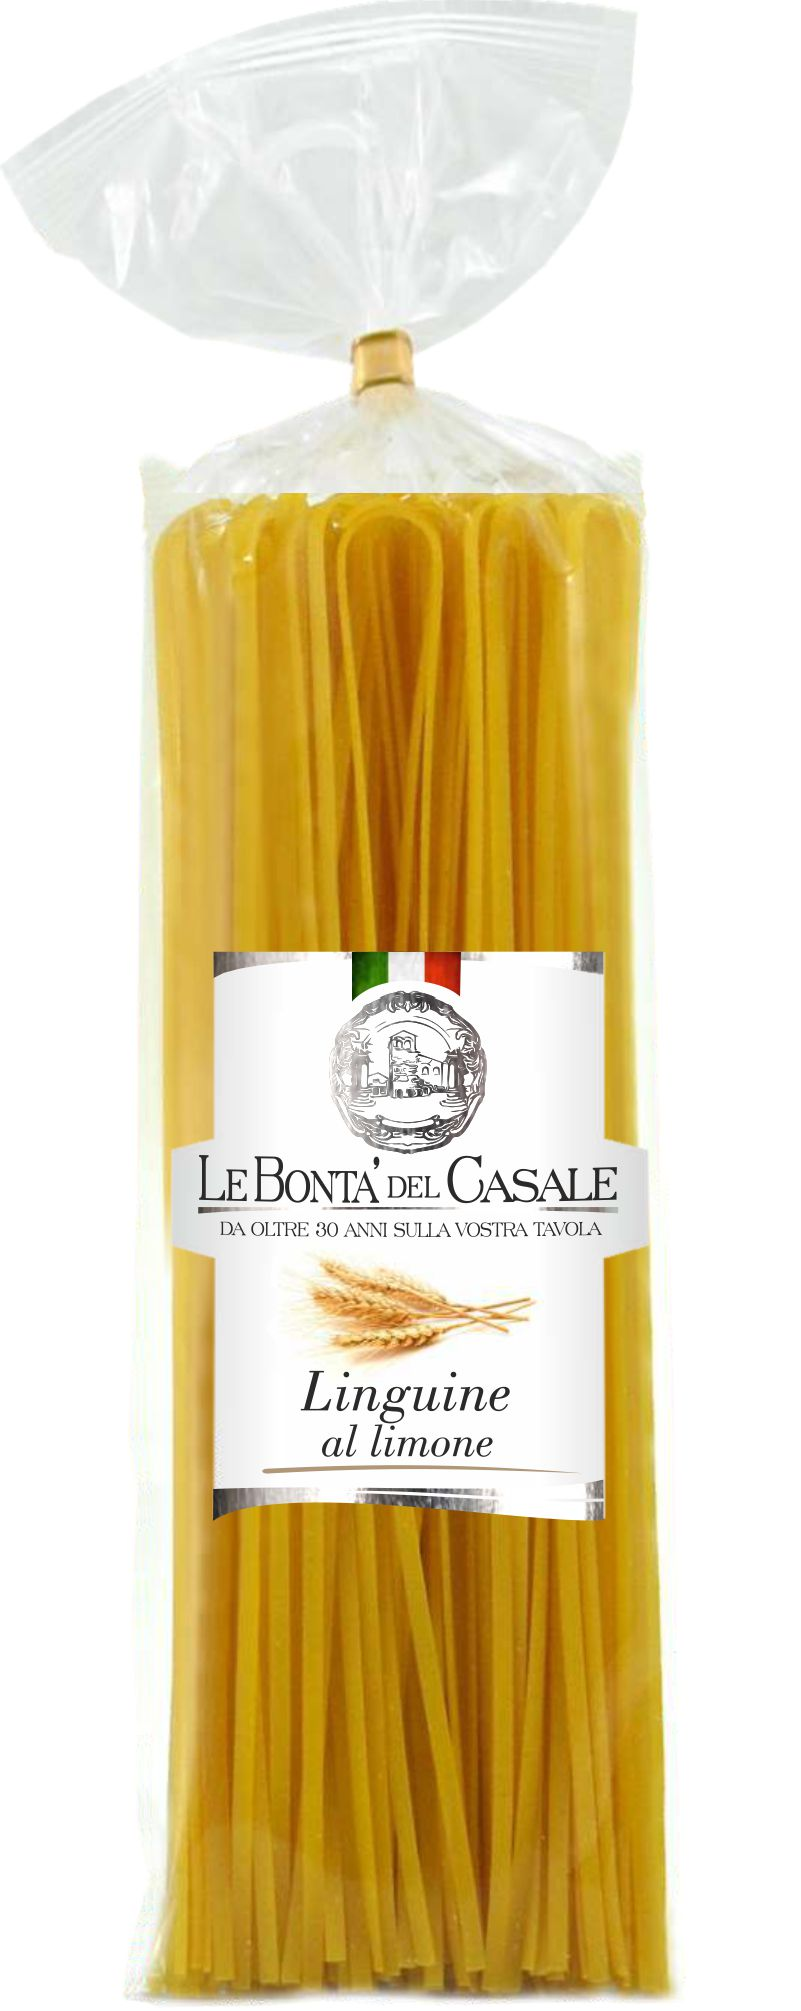 Linguine lemon flavored